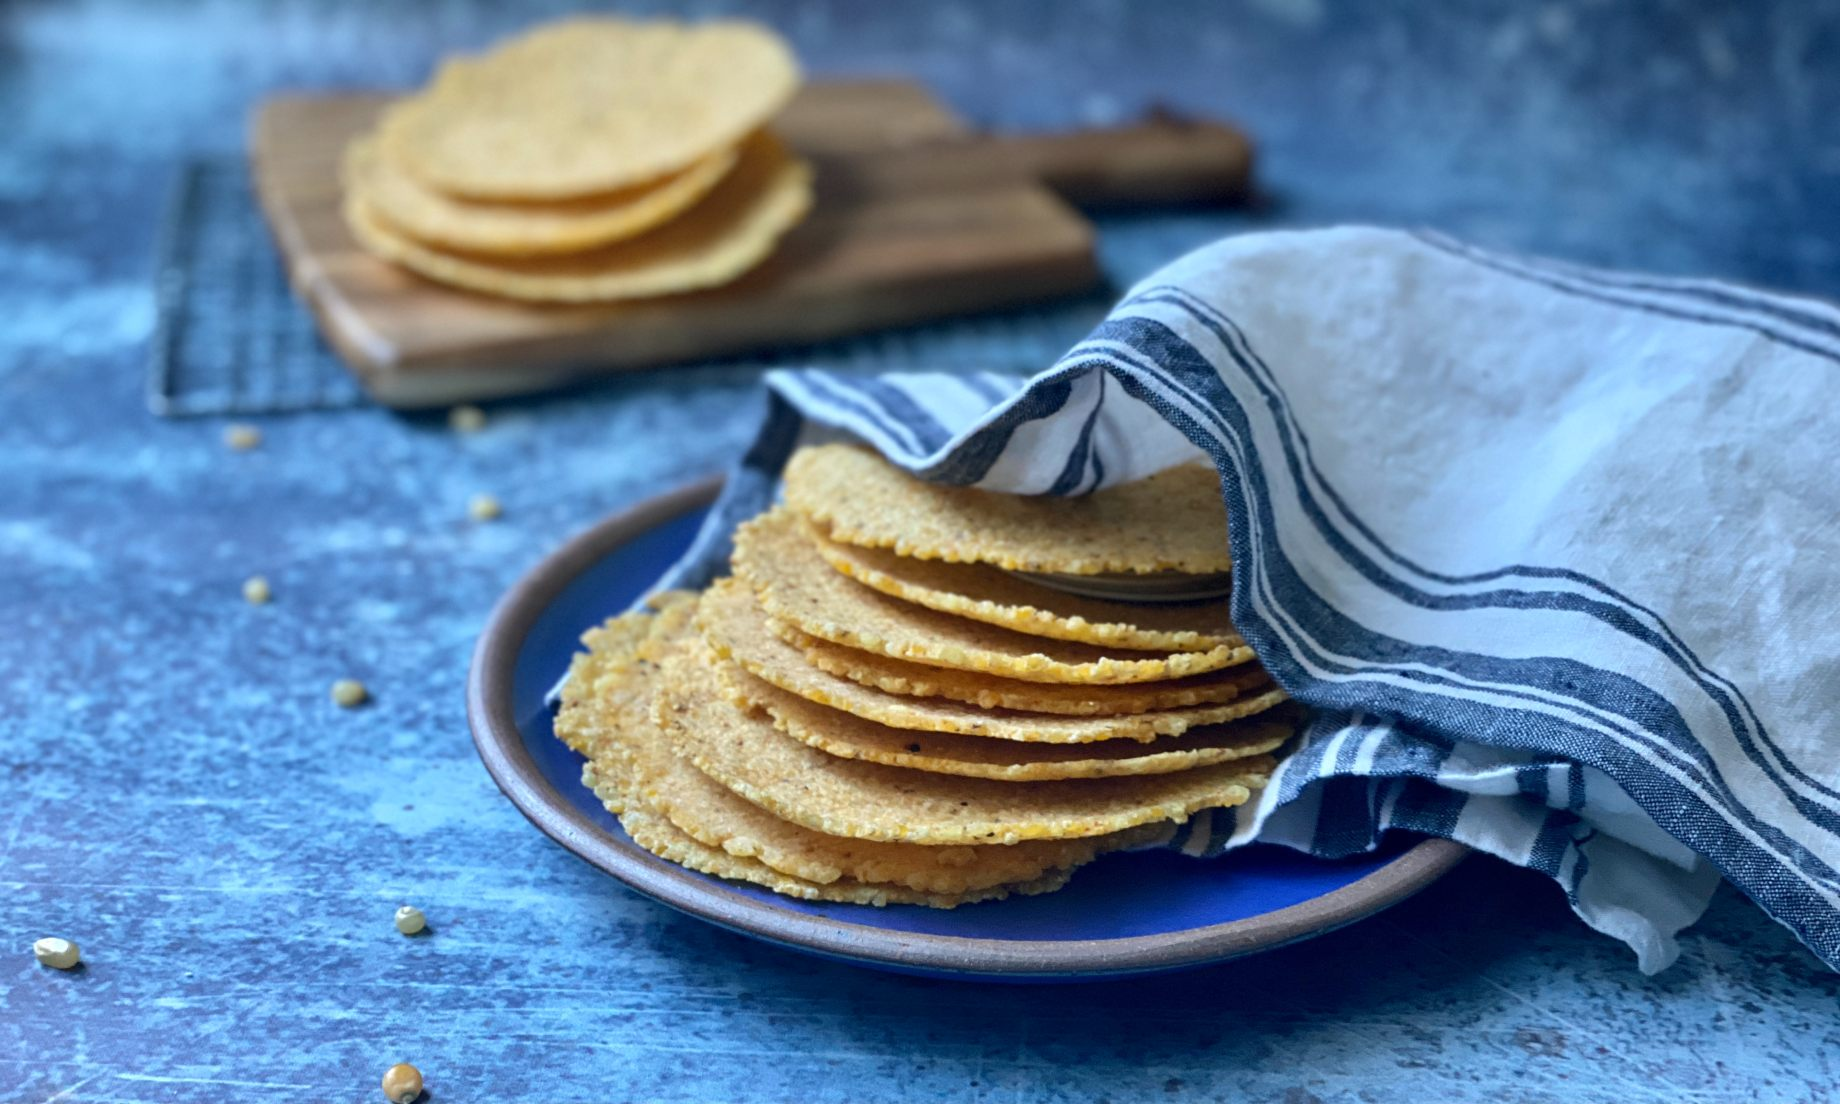 Corn tortillas stacked on a blue plate and wrapped in a kitchen towel.